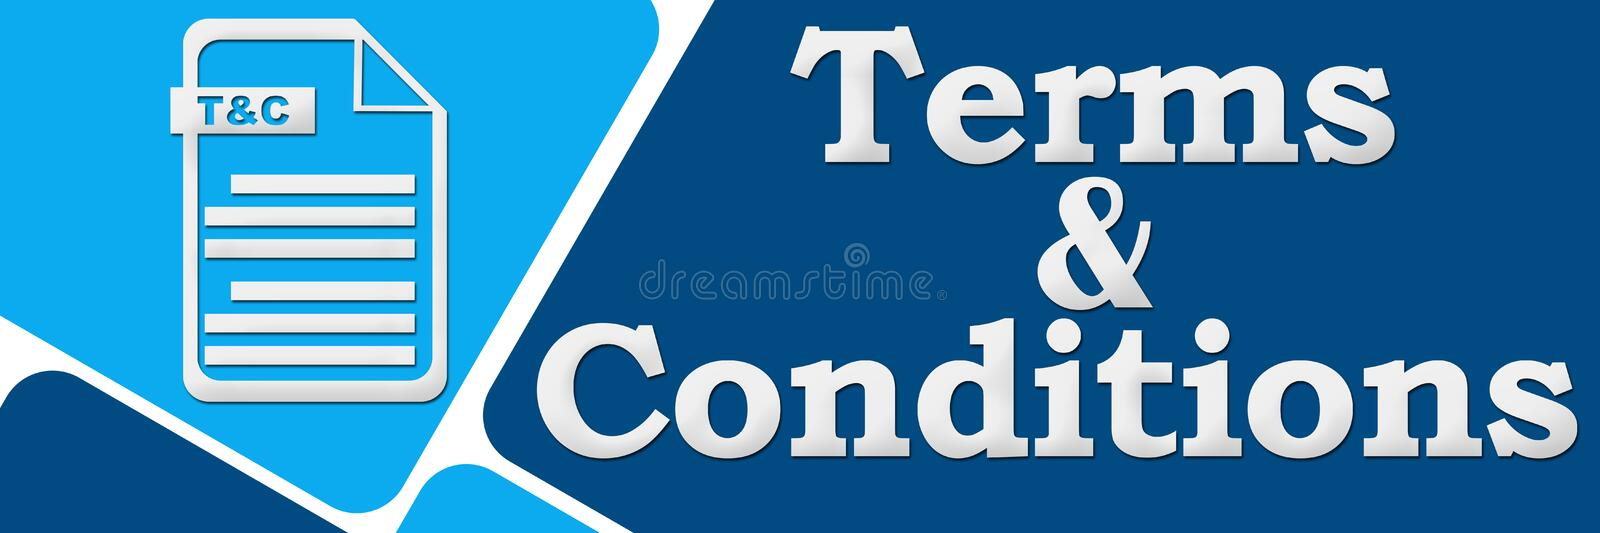 Terms And Conditions 929. Terms and Conditions concept banner image with text and tnc file icon vector illustration